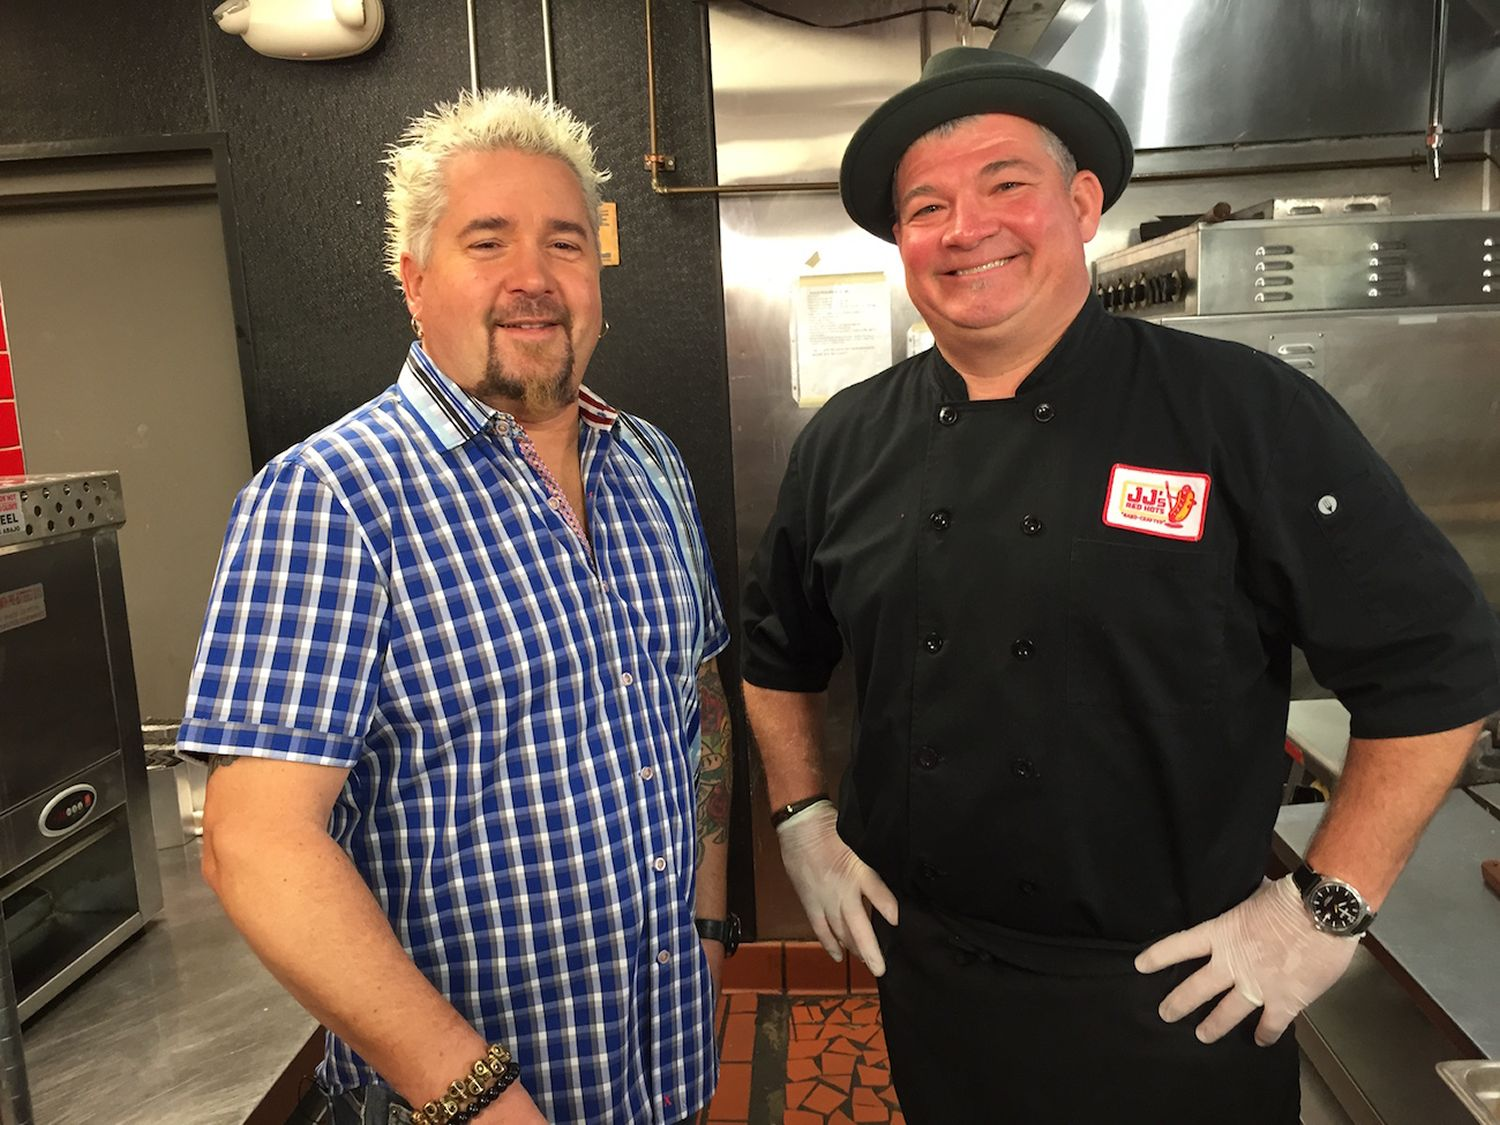 JJ's Red Hots Announces Month-Long Collaboration with Fellow Charlotte Restaurants Featured on Food Network's Diners, Drive Ins & Dives